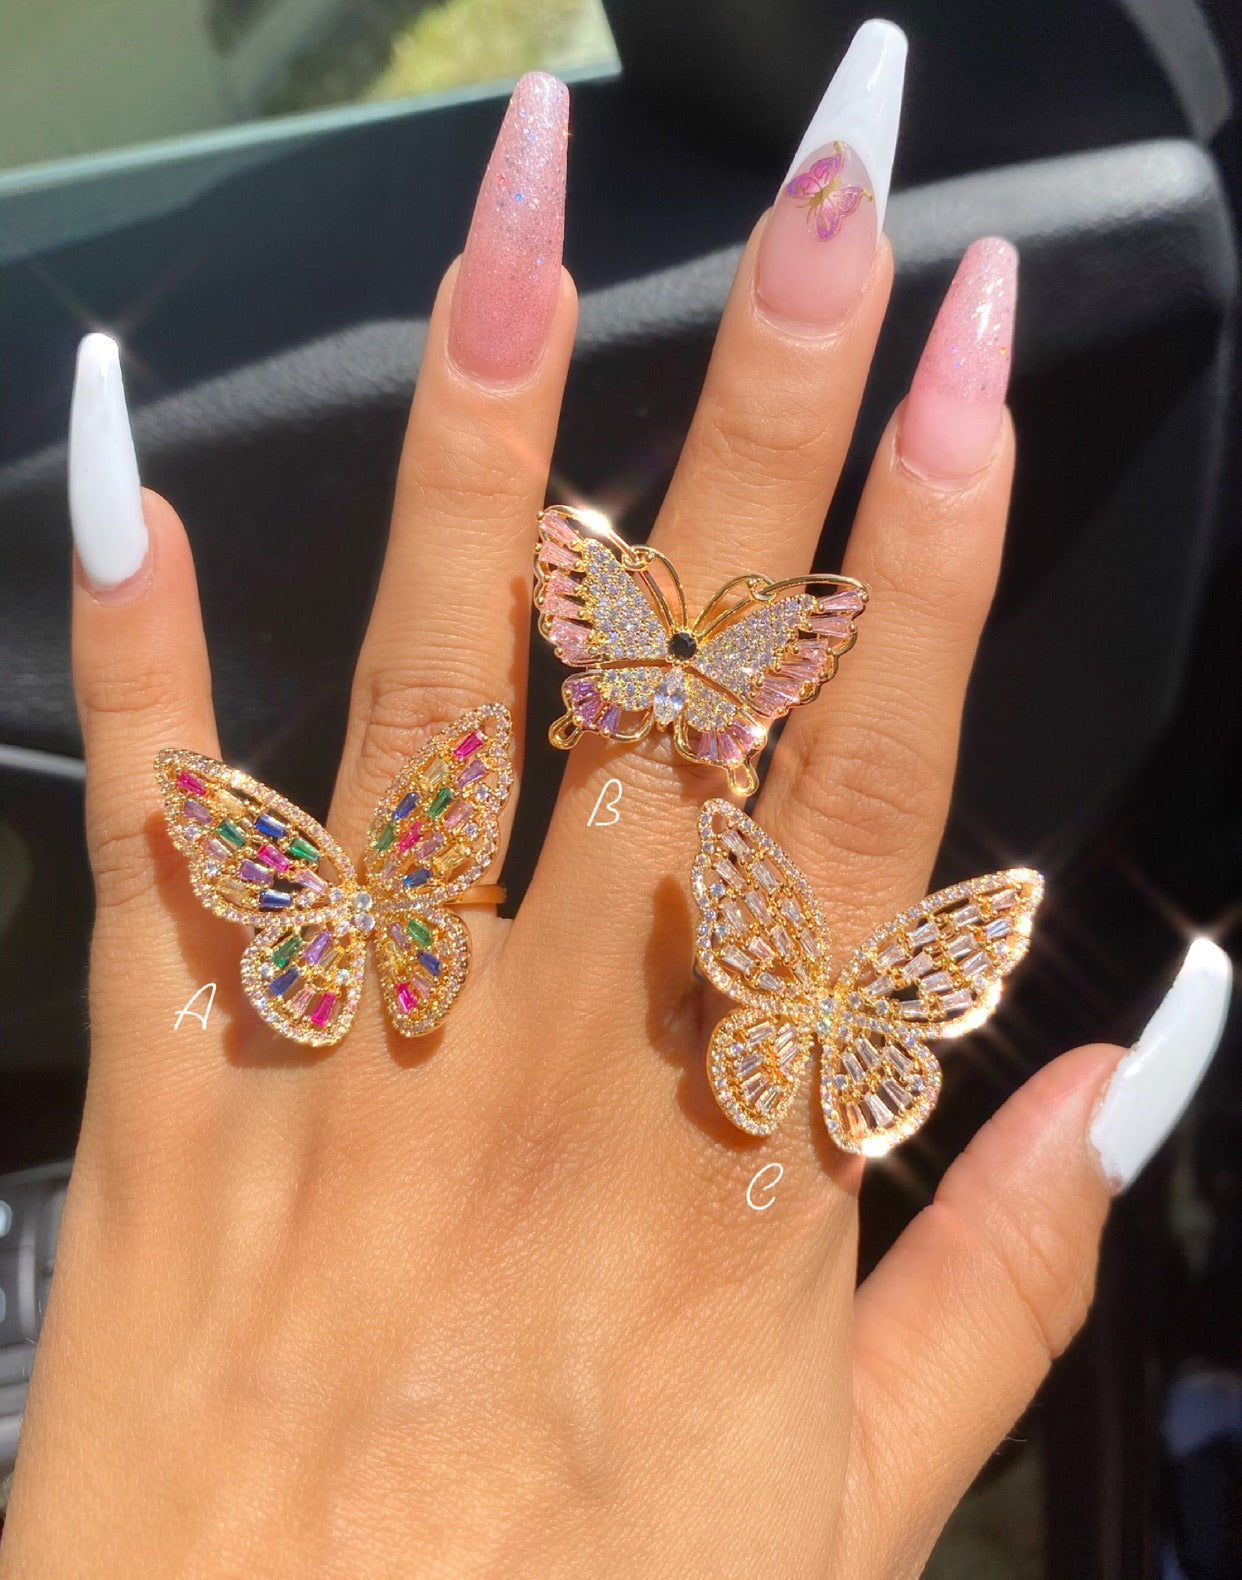 Butterfly ring 2